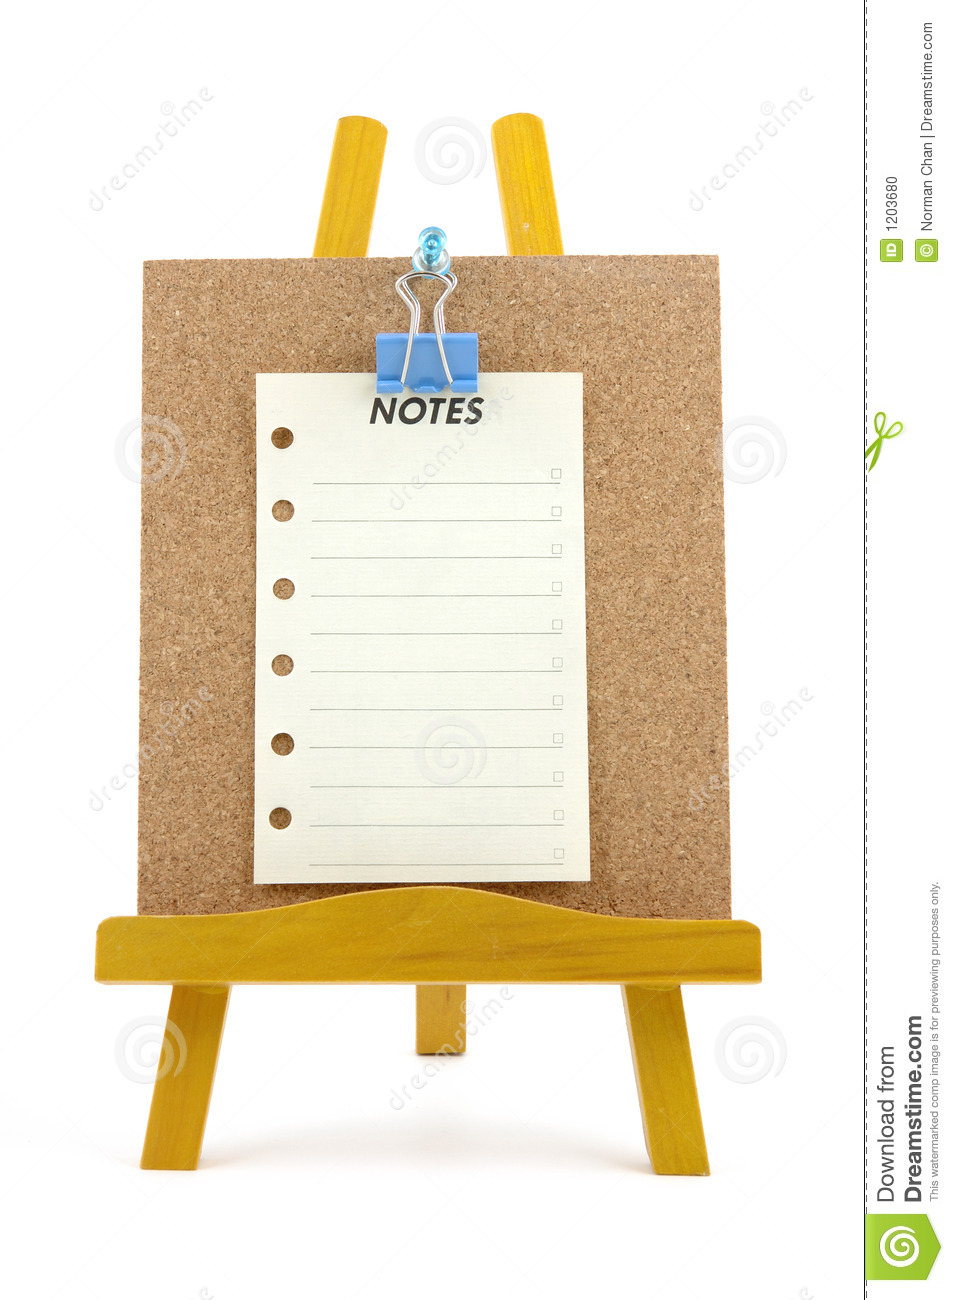 Pinned note on corkboard with wooden stand